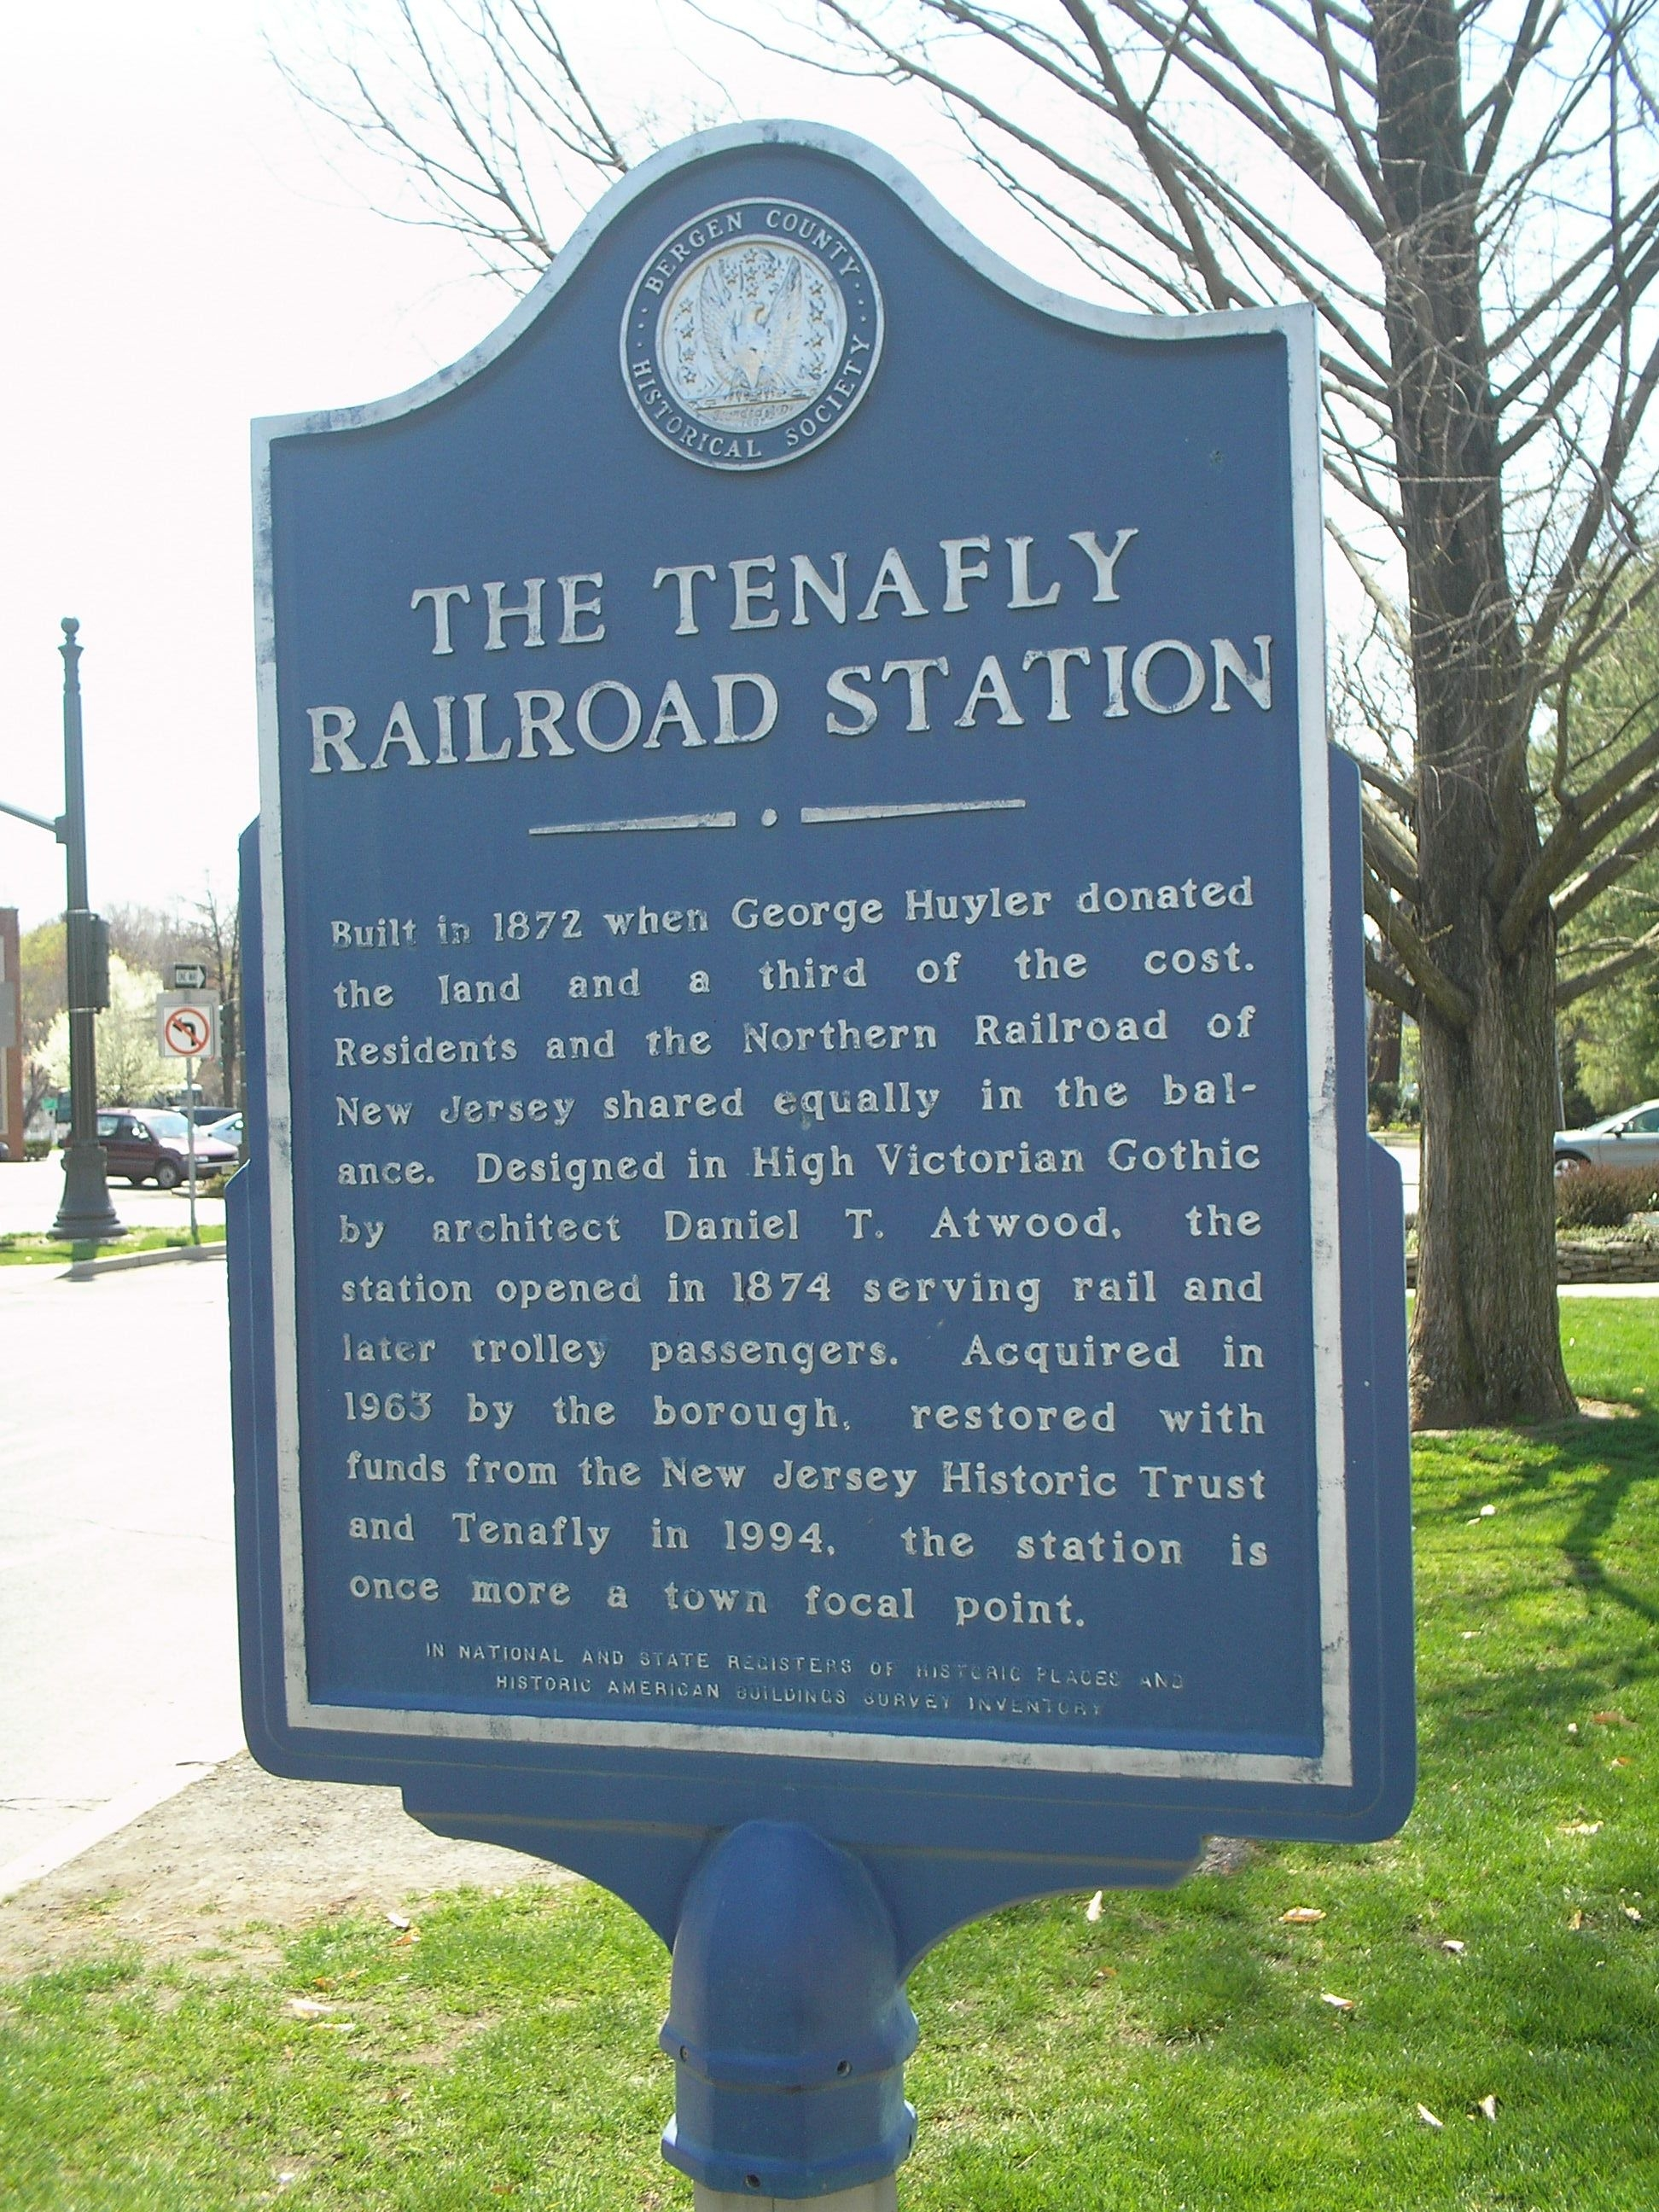 The Tenafly Railroad Station